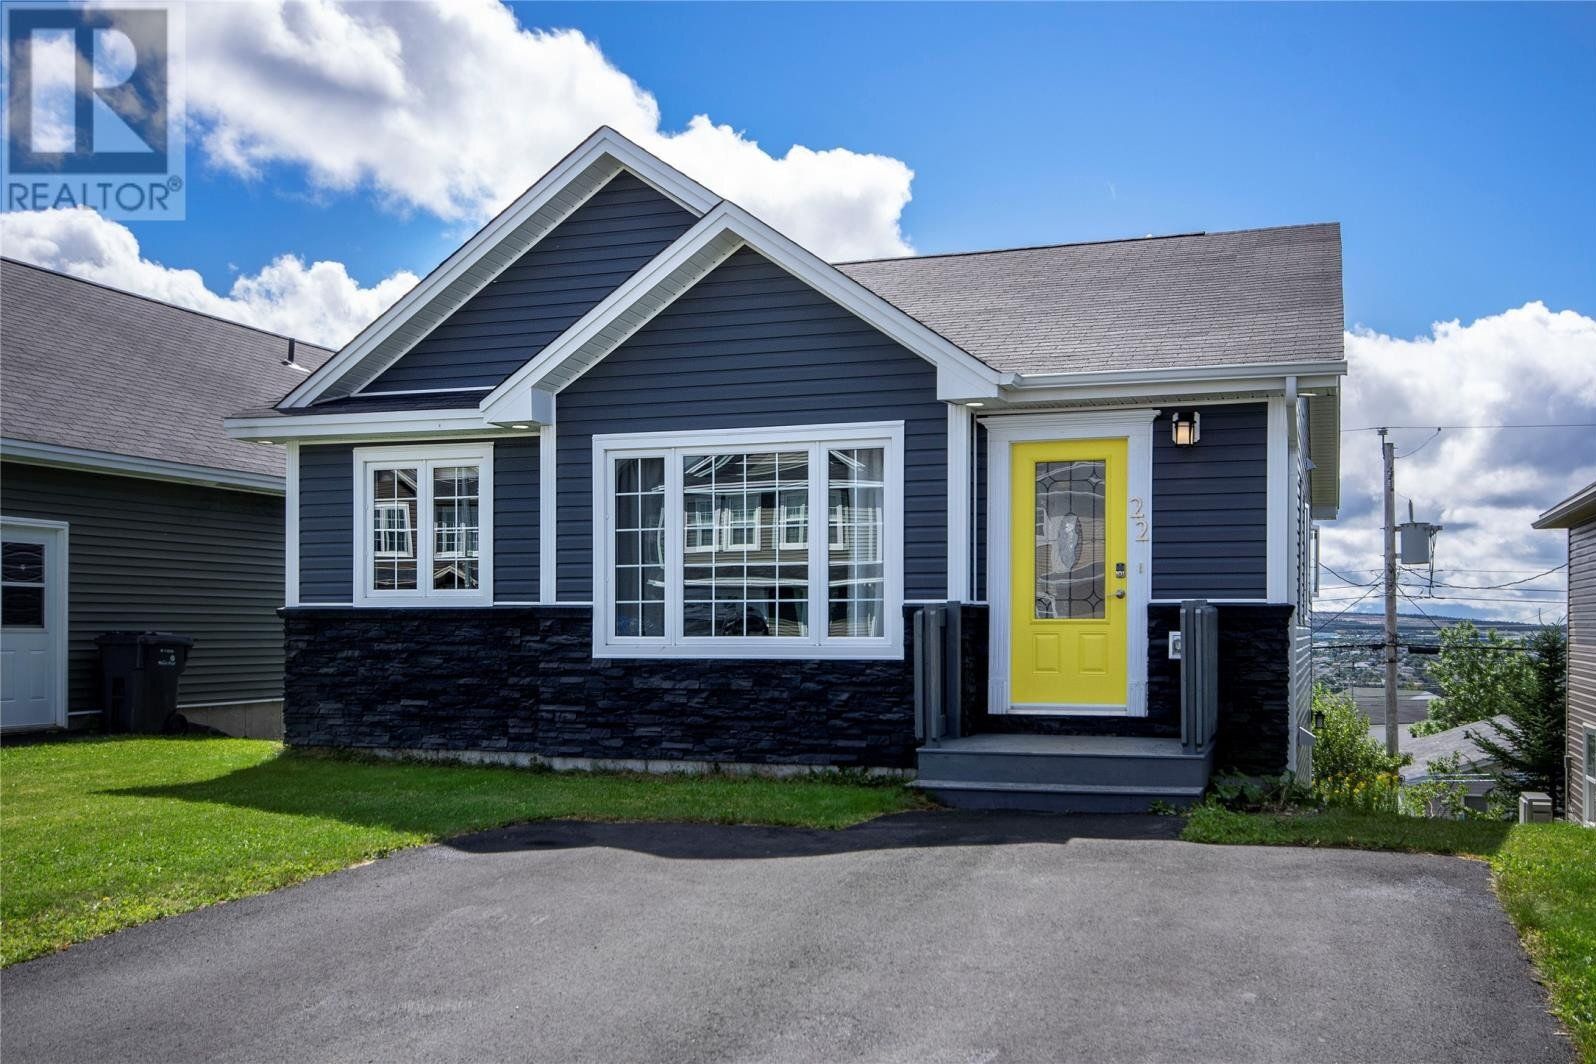 House for sale at 22 Simcoe Dr Mount Pearl Newfoundland - MLS: 1223659